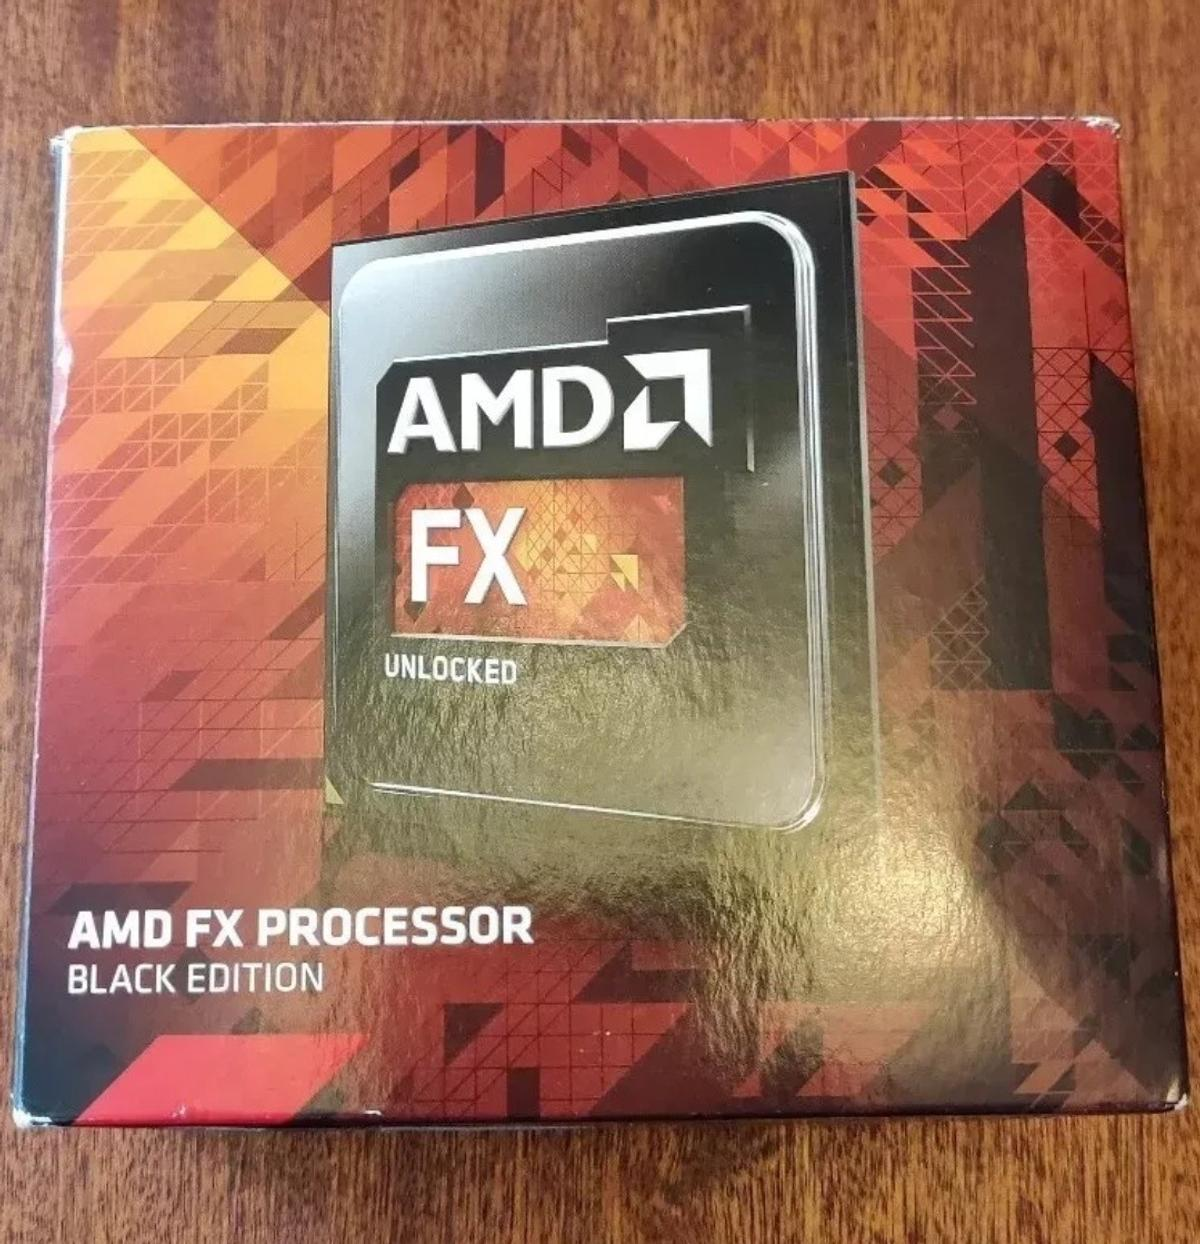 AMD FX-8320 Black Edition - 4GHz Eight Core in ST4-Trent for £25 00